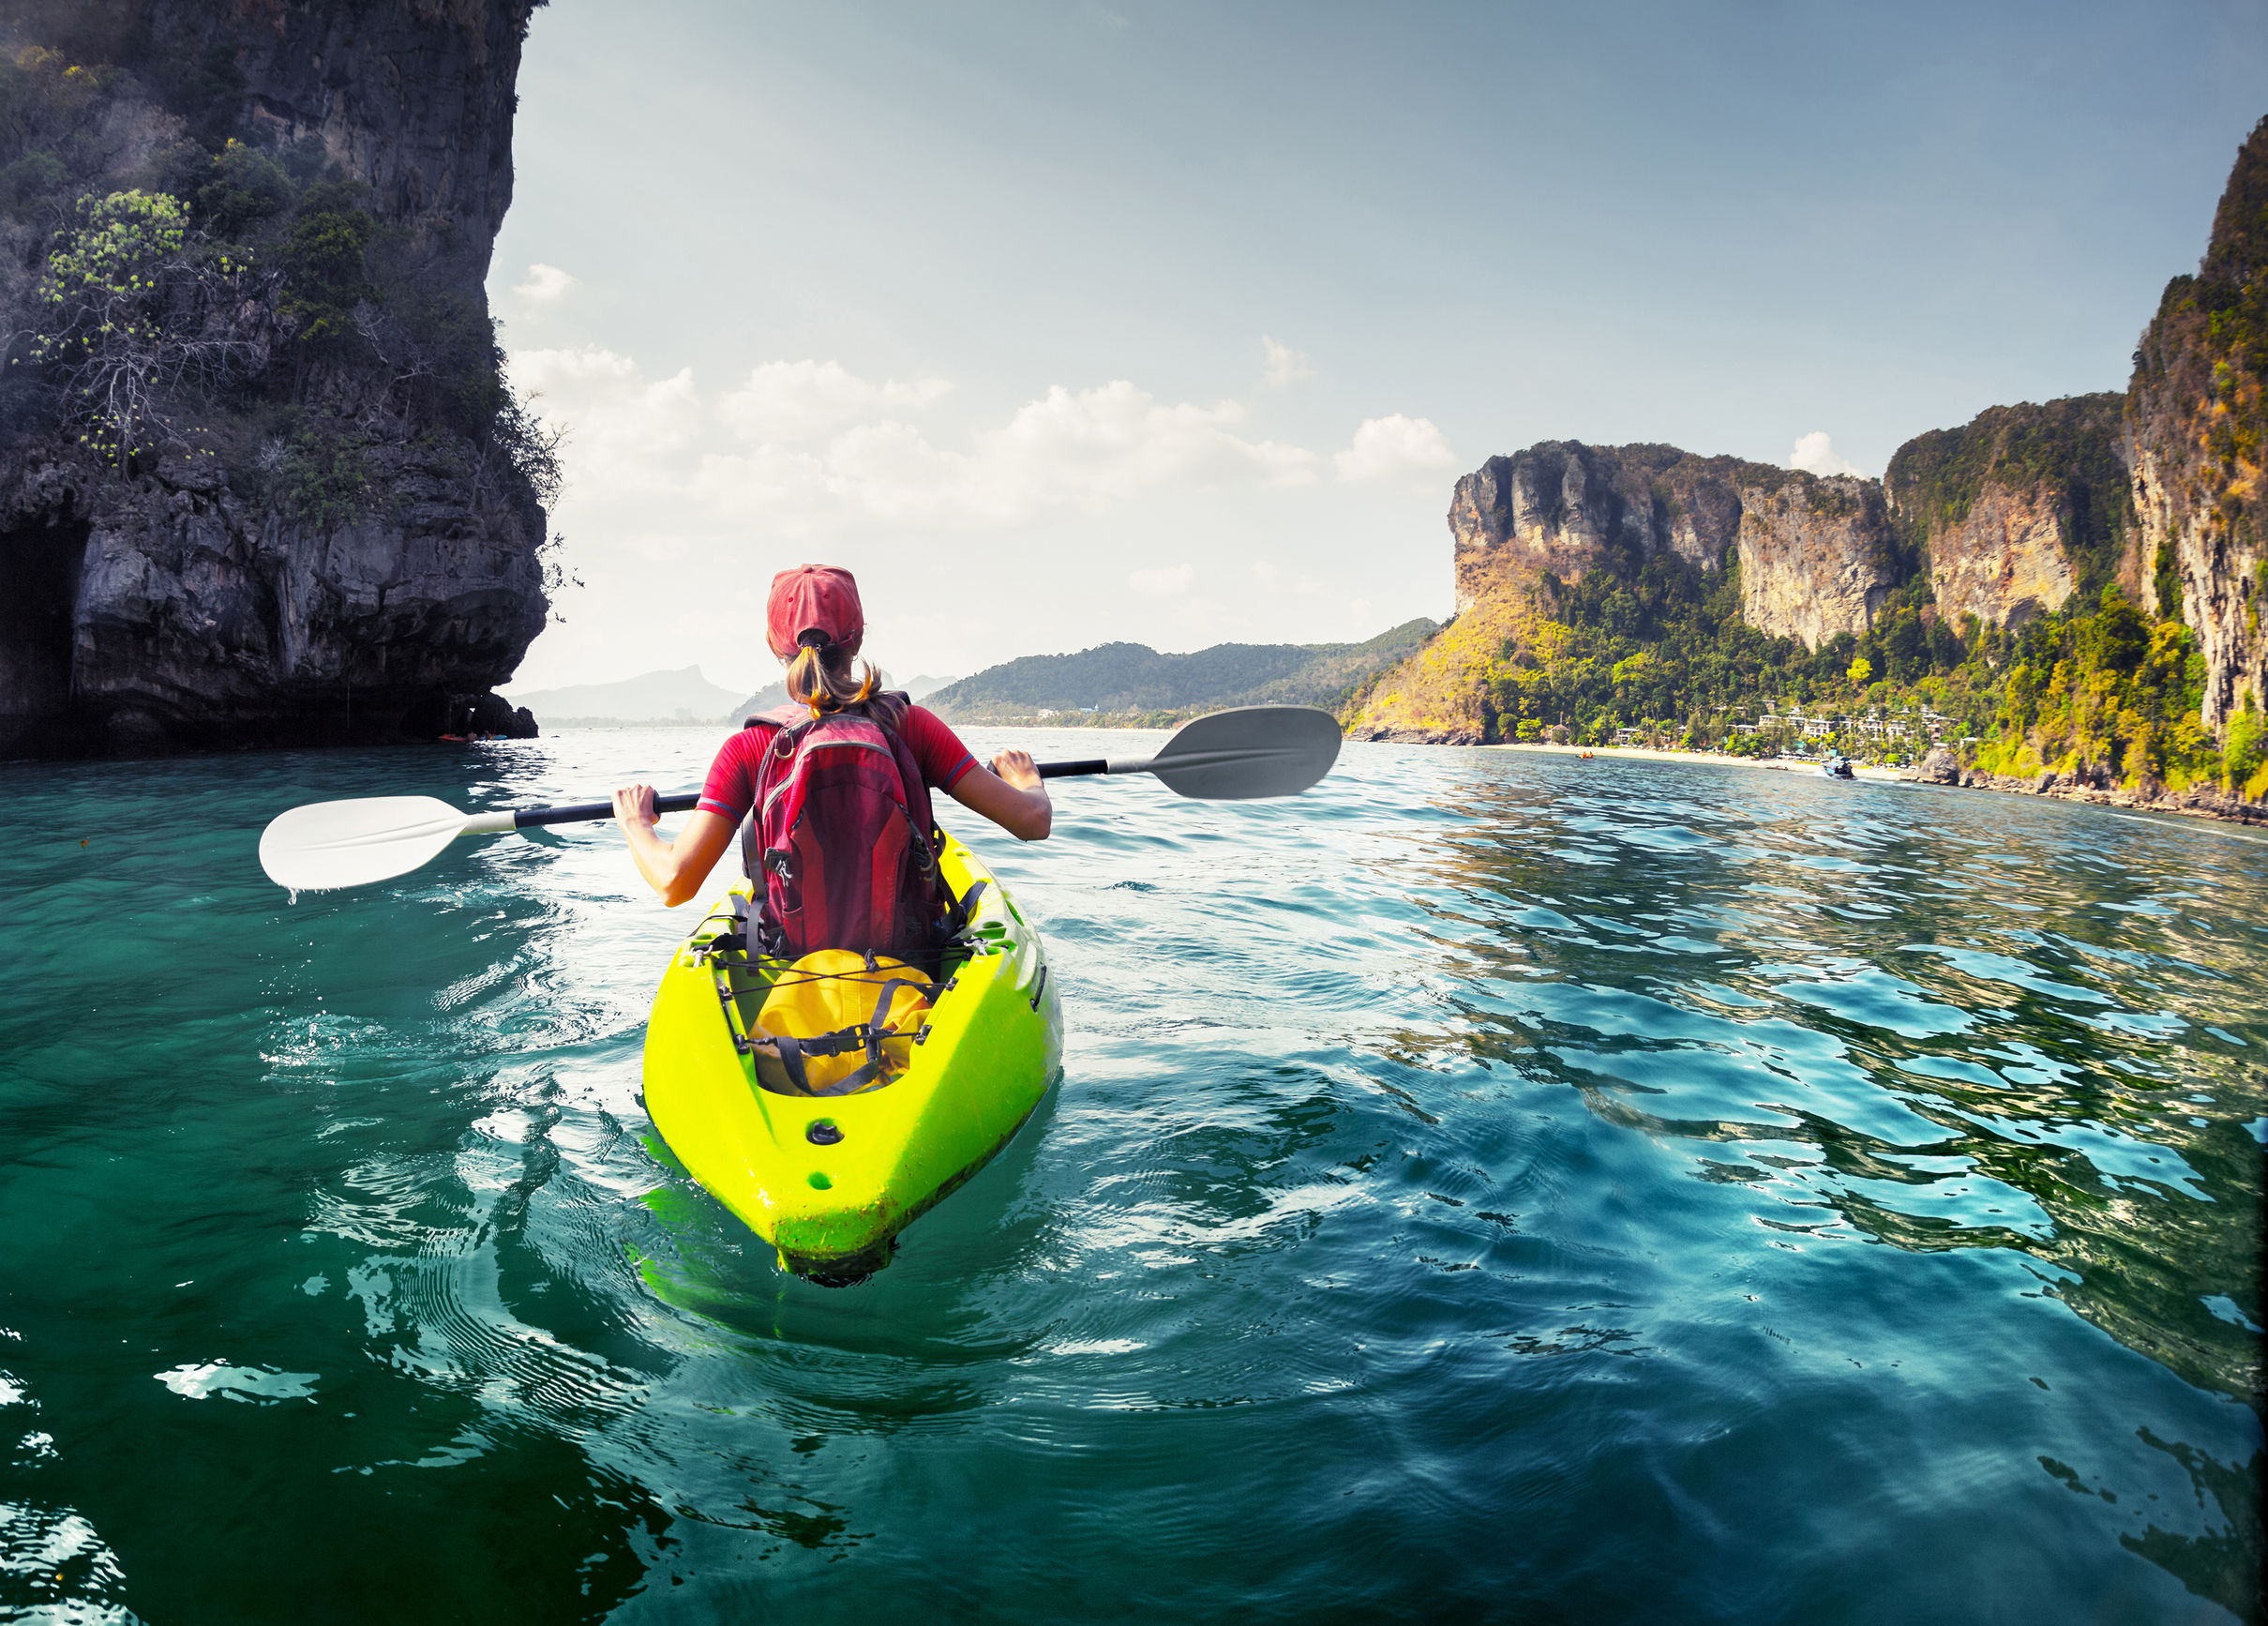 Best Kayak 2020: Shopping Guide & Review